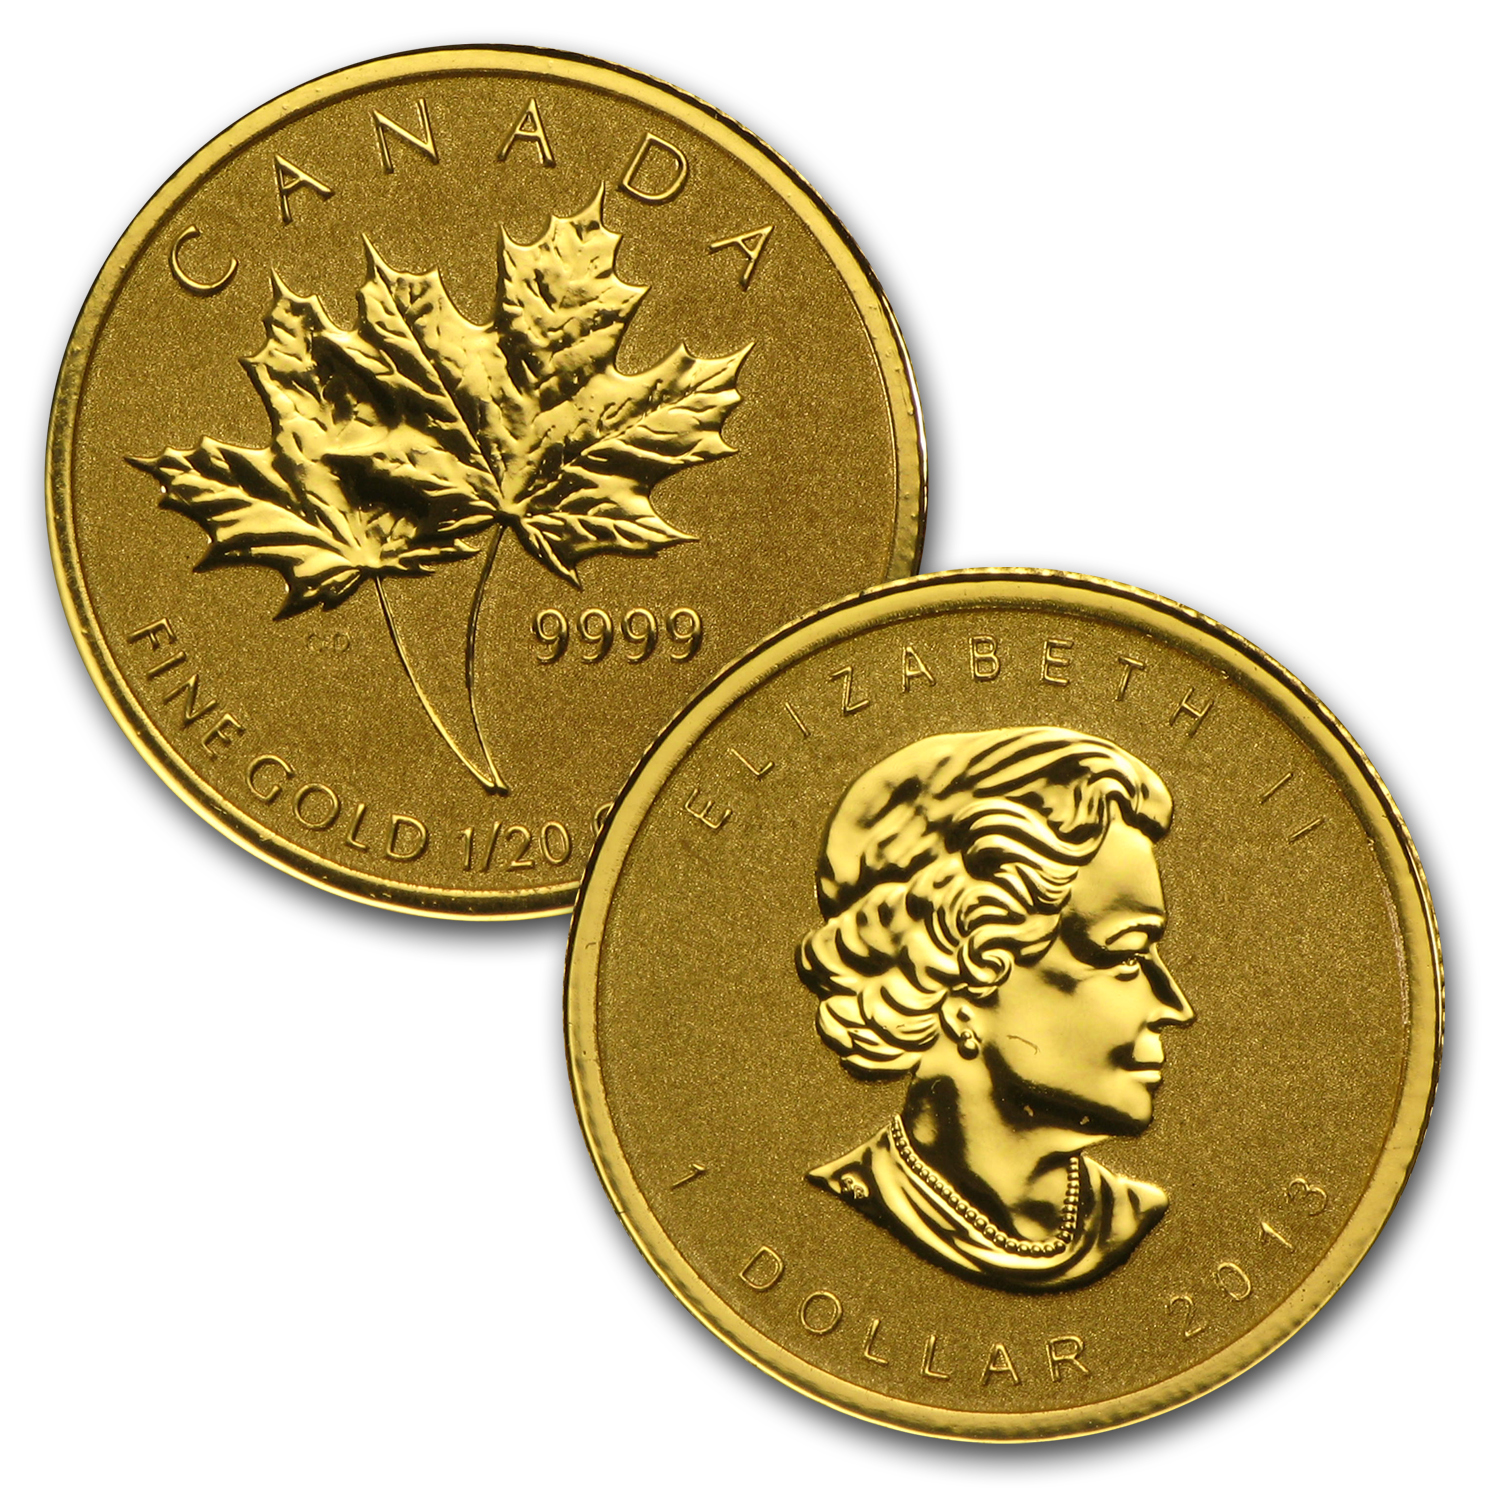 2013 4-Coin Gold Canadian Fractional Maple Leaf Set (1.4 oz)